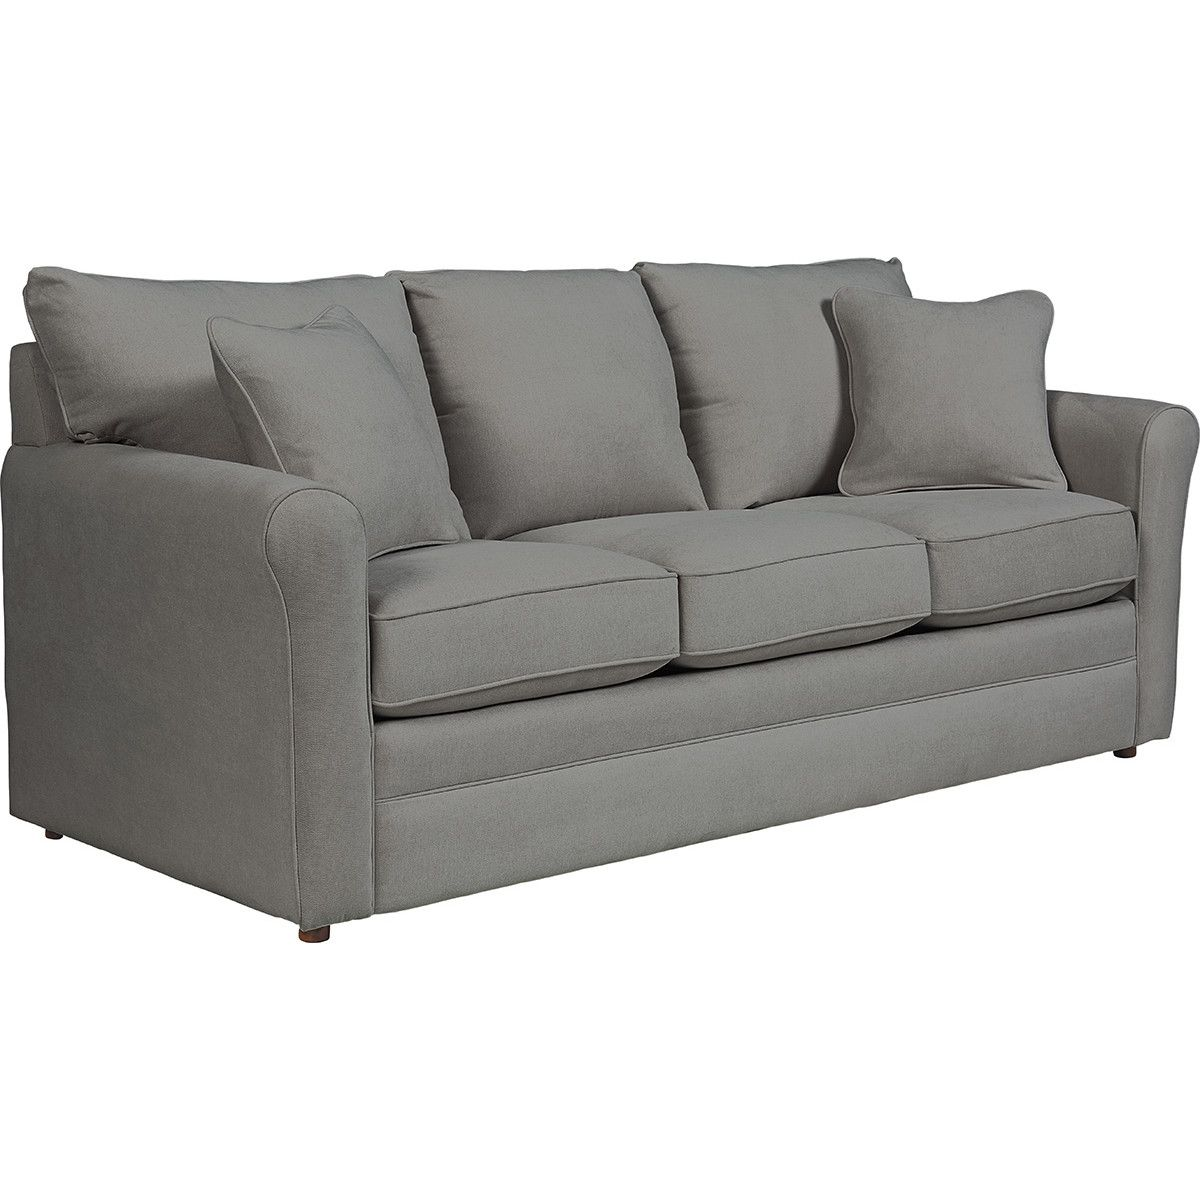 Leah Supreme 82 Round Arms Sofa Bed Sofa Bed Sale Sofa Double